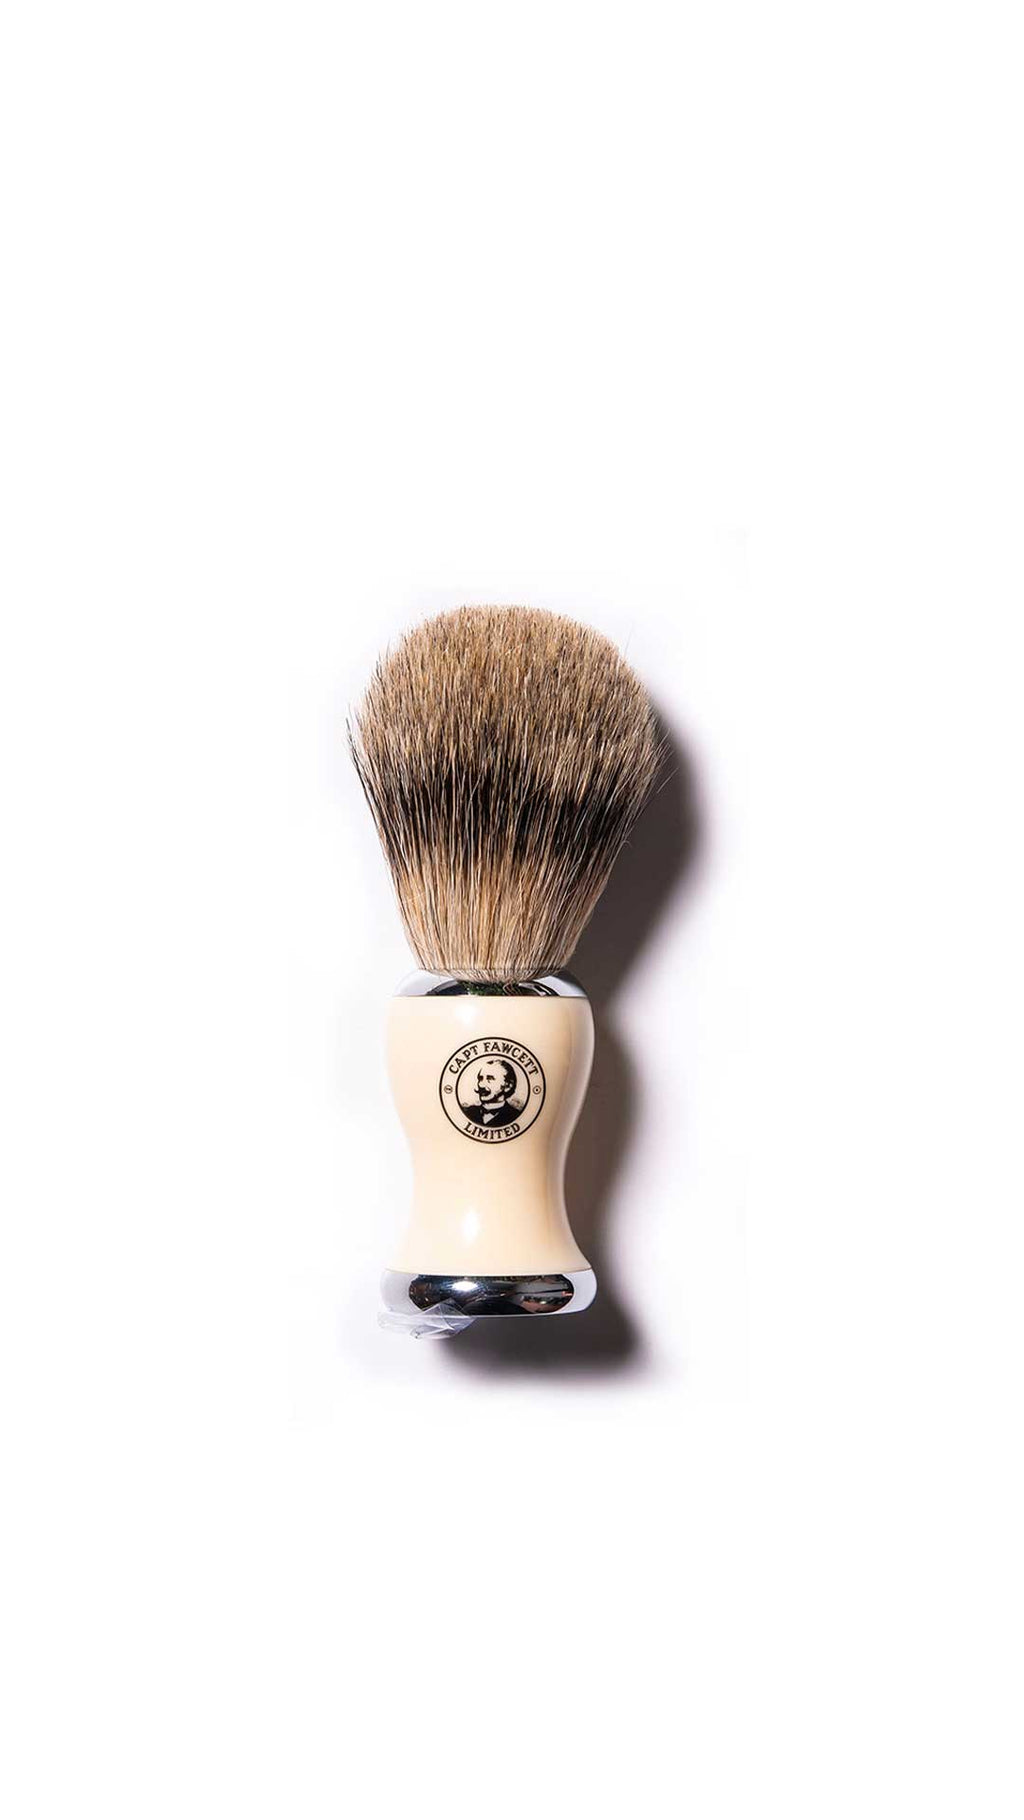 BEST BADGER SHAVING BRUSH - BLAIREAU DE RASAGE - CAPTAIN FAWCETT